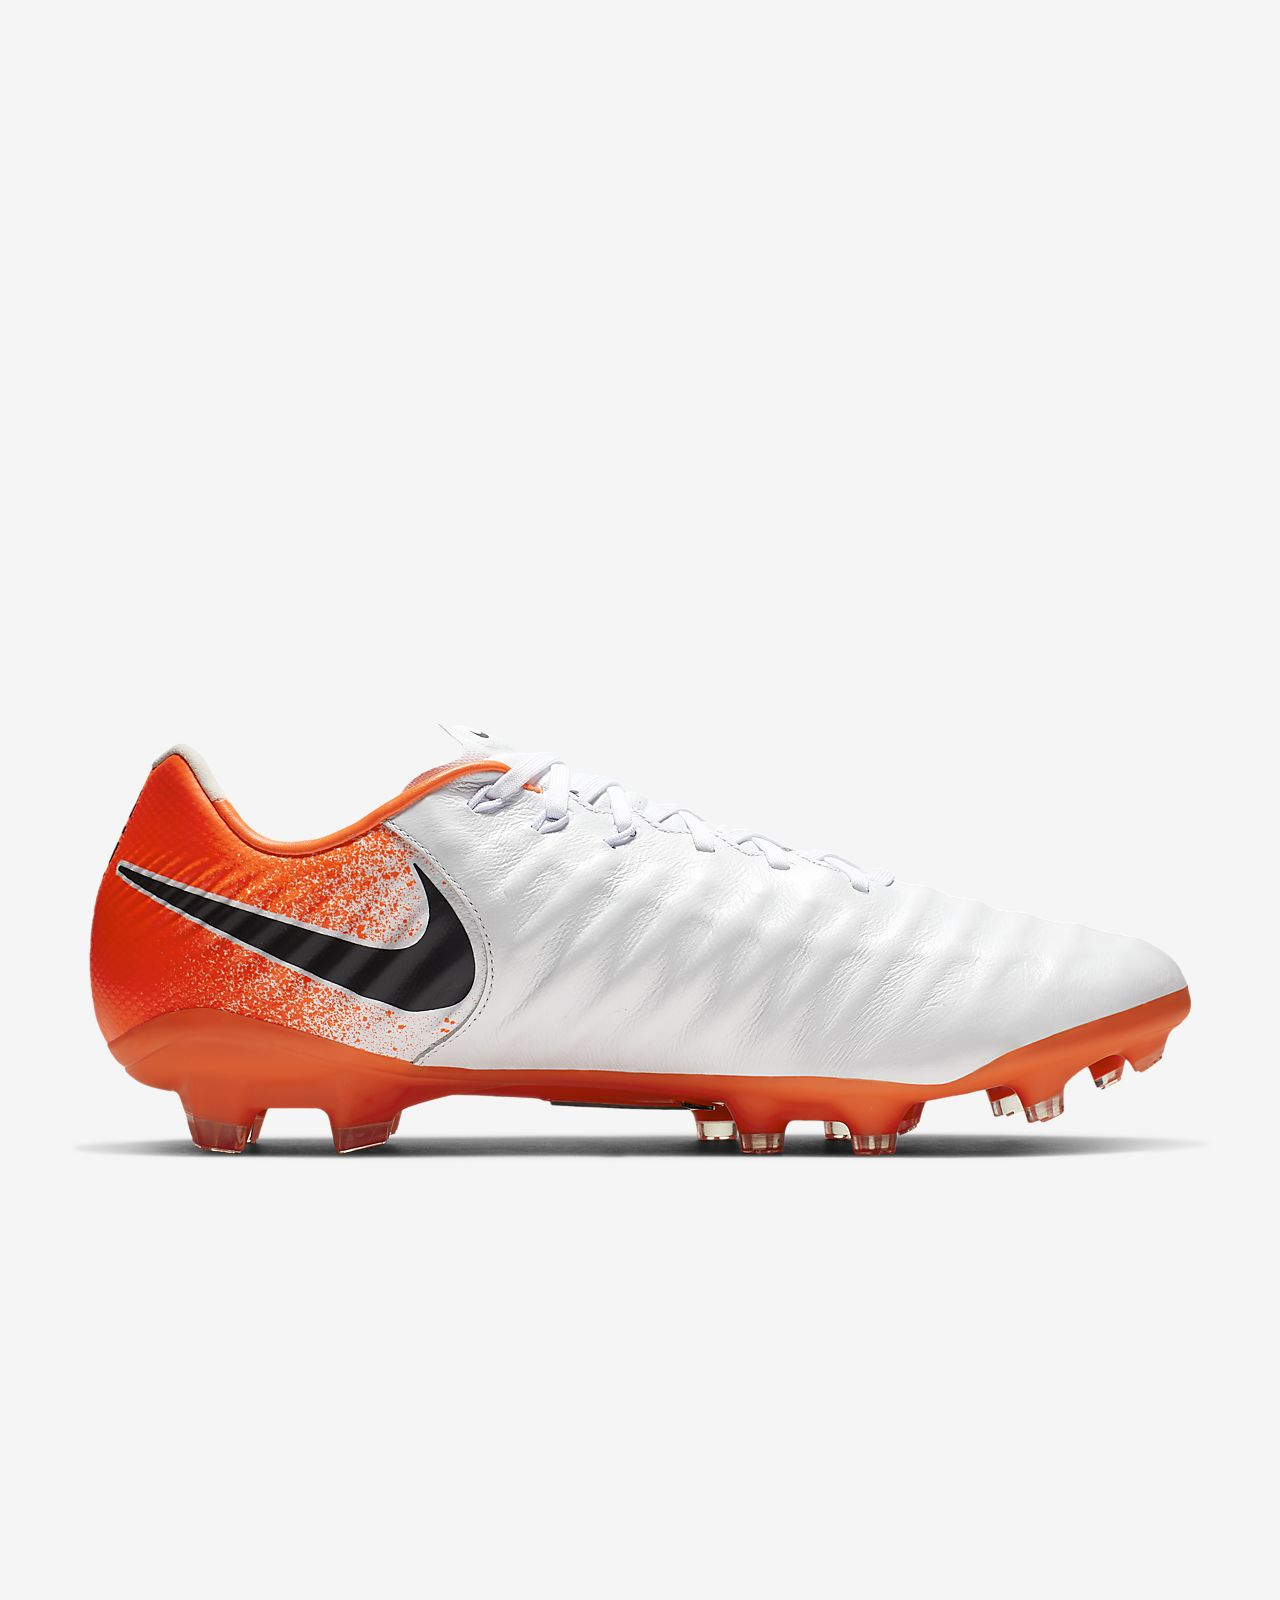 release date 0dd25 c1f22 ... Nike Legend 7 Pro FG Firm-Ground Soccer Cleat